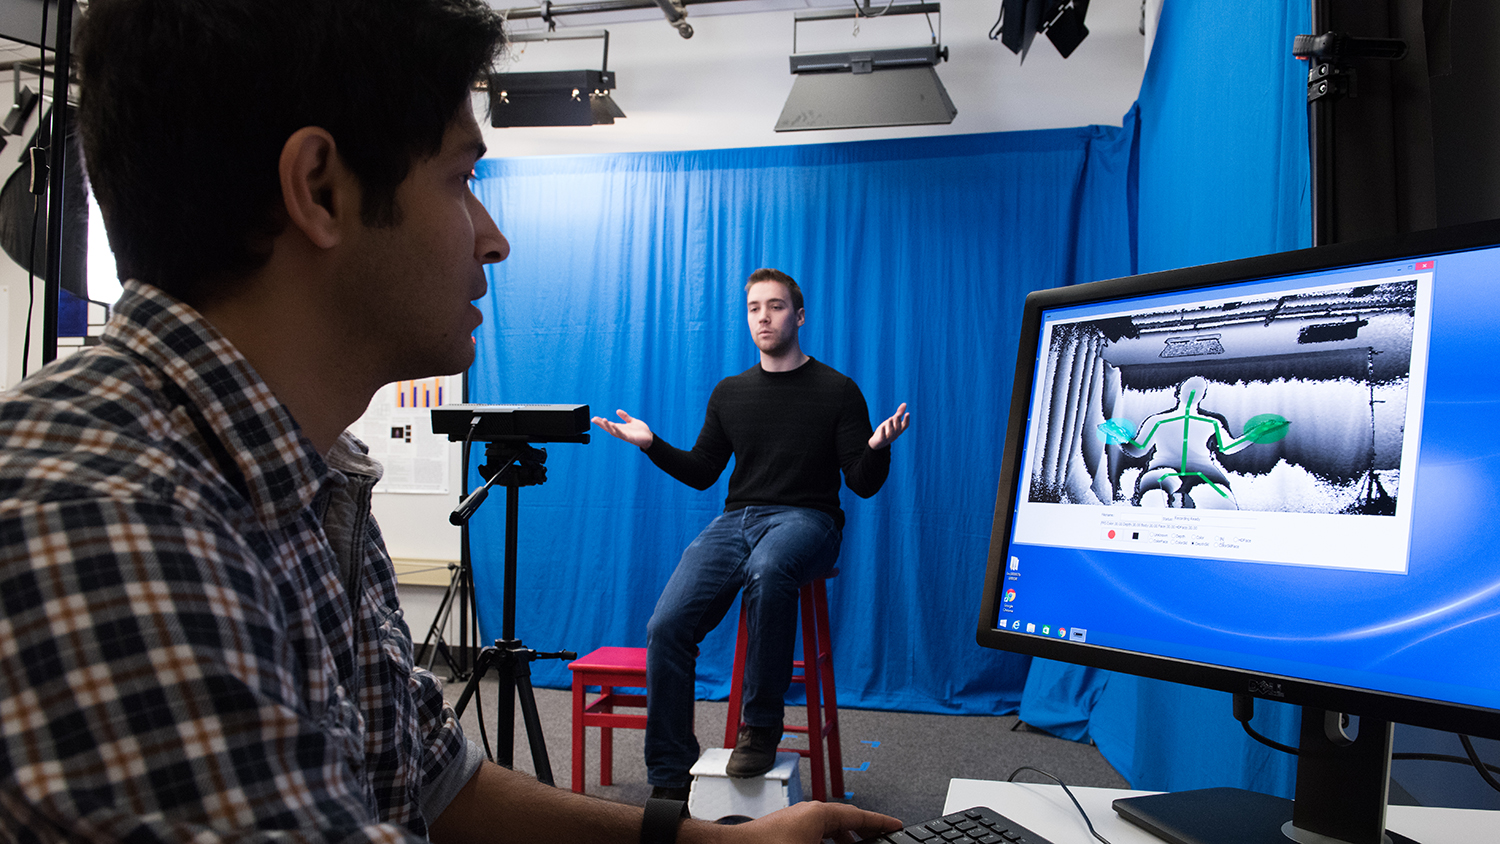 Image showcasing a person using ASL which is being recorded and monitored by another individual on a computer with a camera and interpretive software.